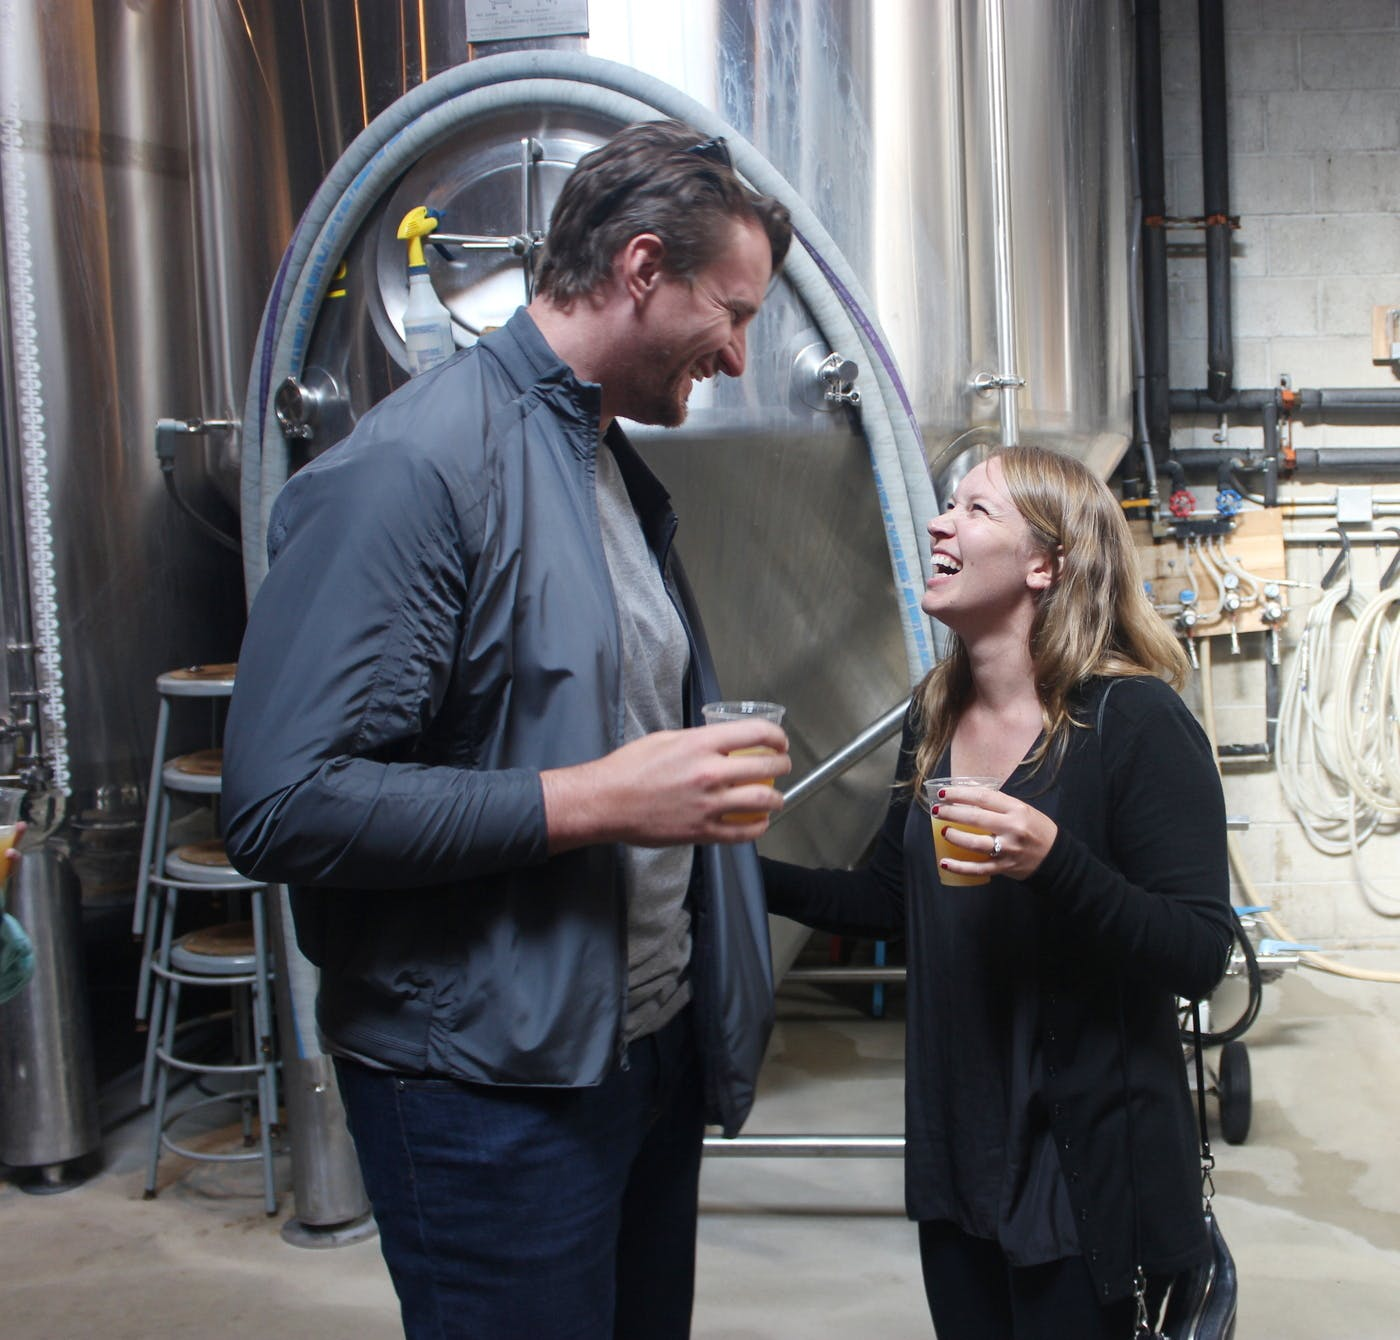 couple at the brewery